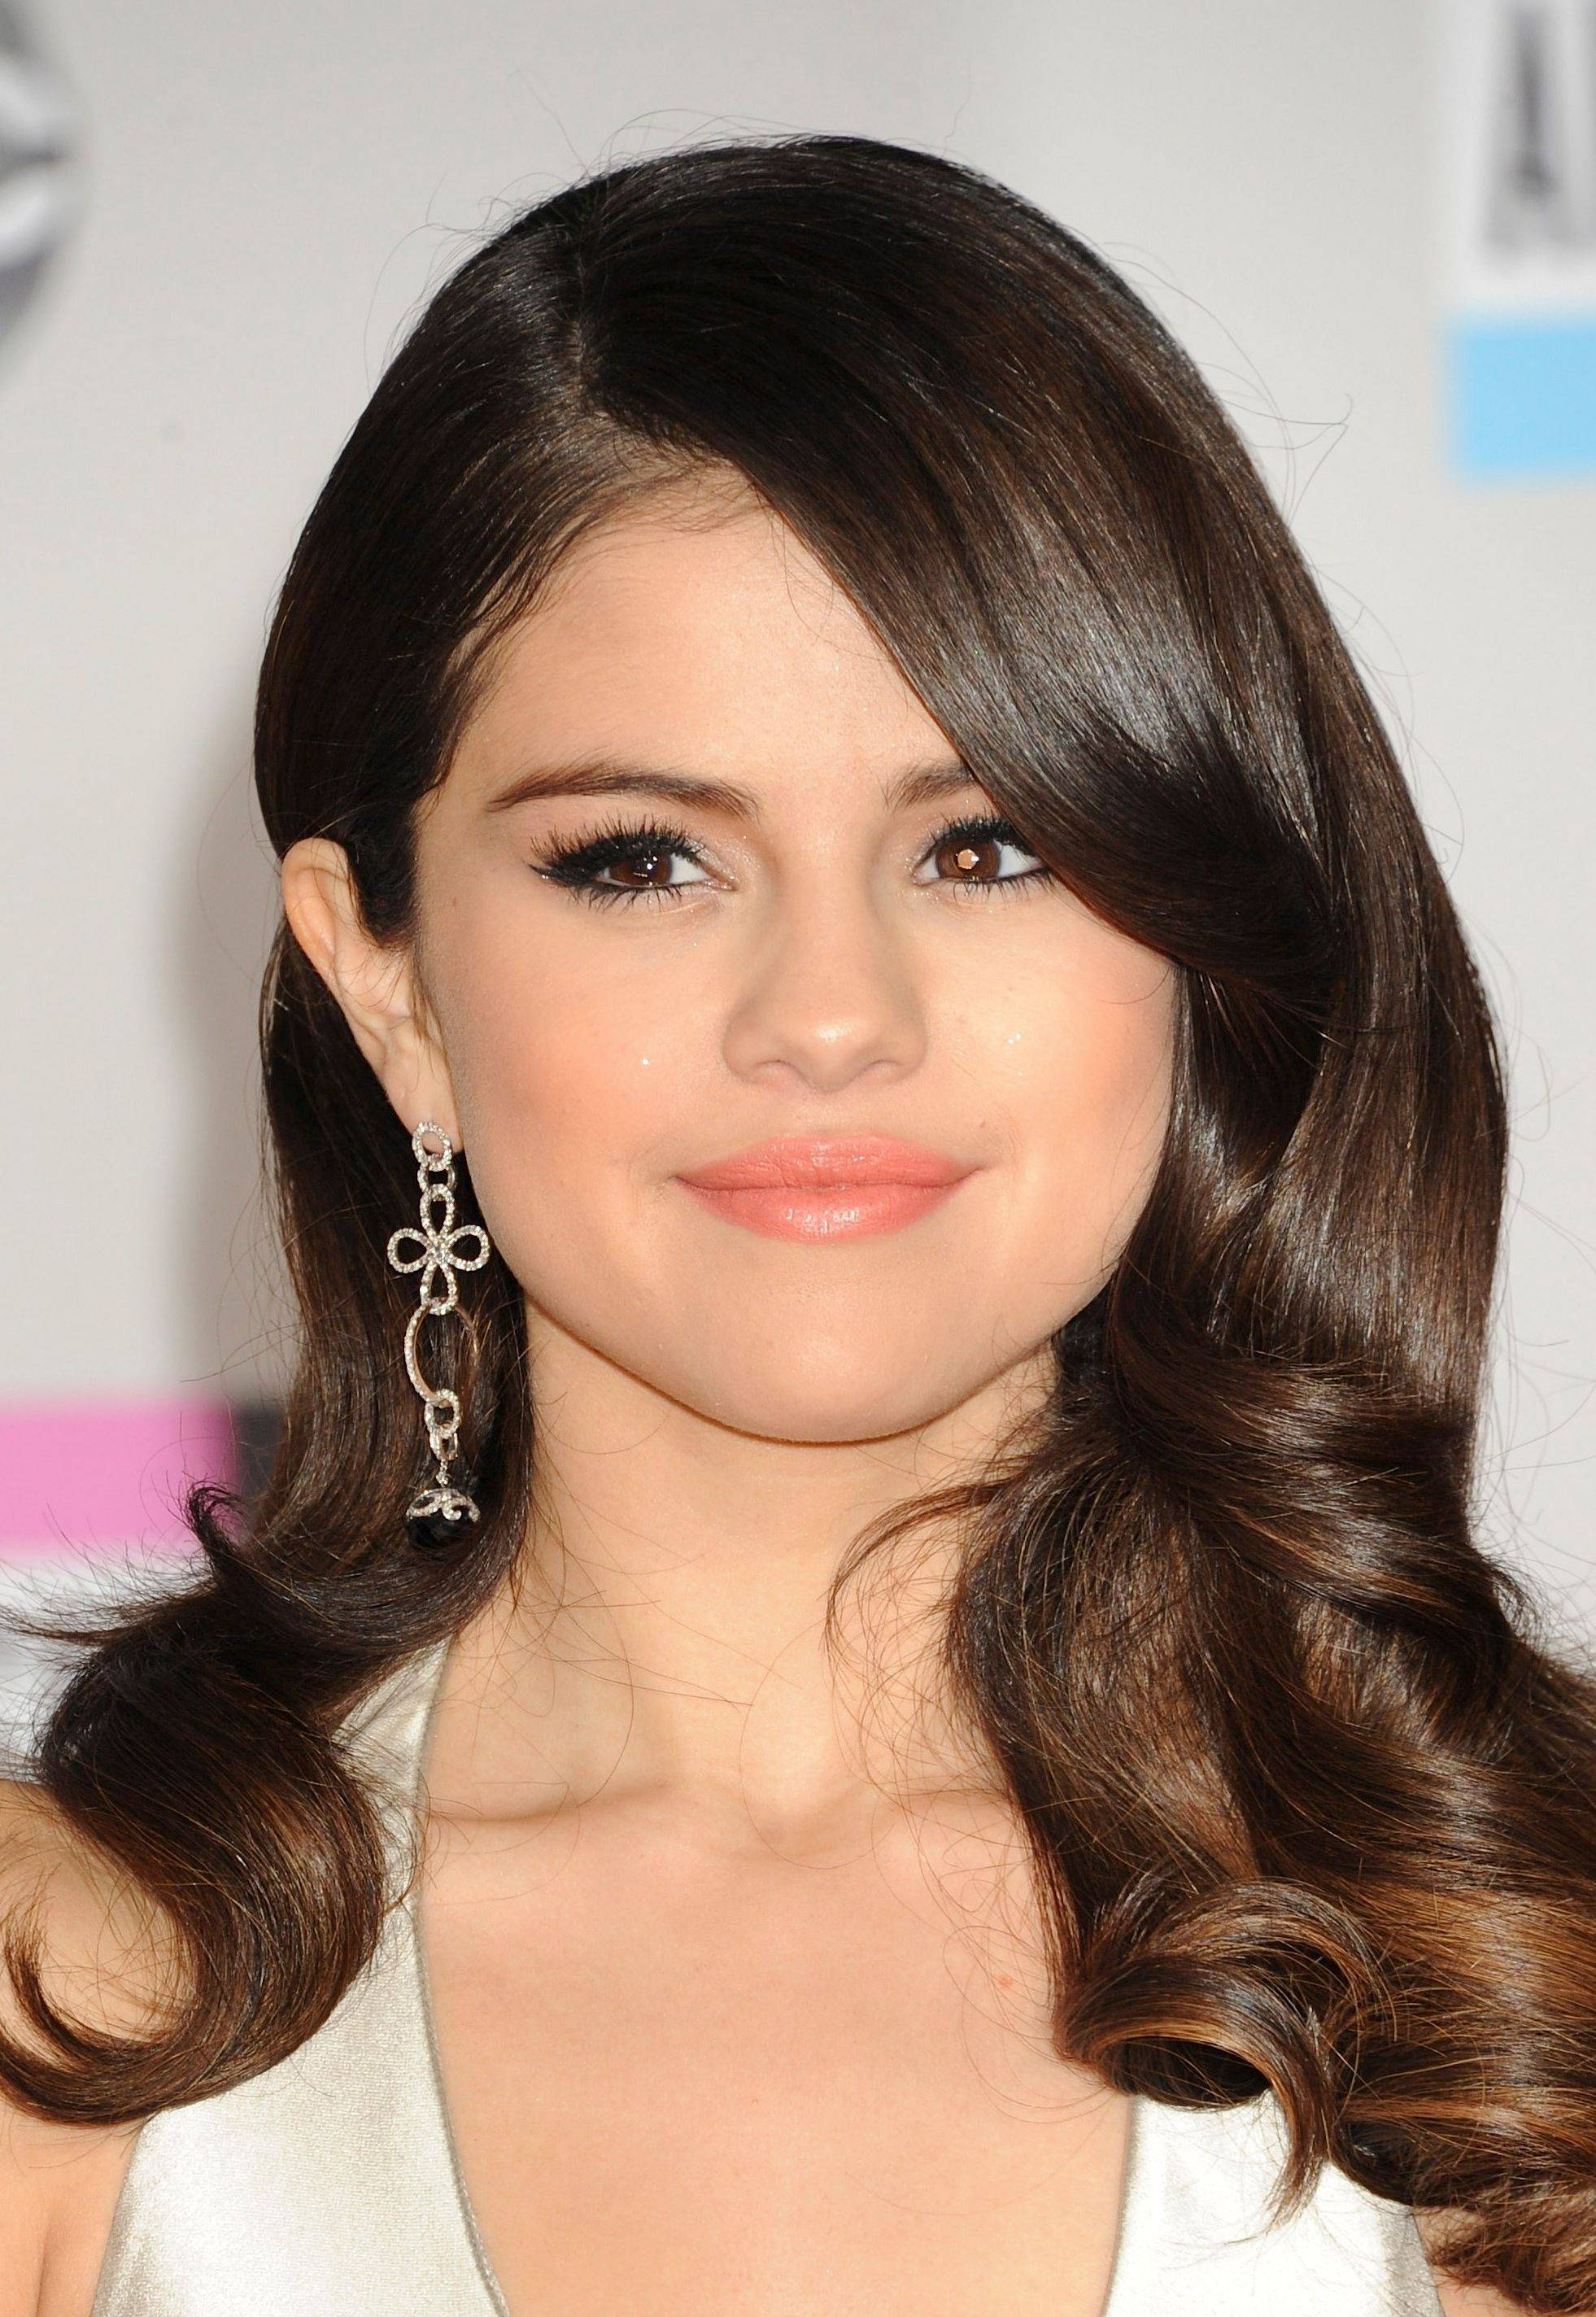 This Nov. 20, 2011 file photo shows Selena Gomez during arrivals to the 2011 American Music Awards in Los Angeles. Los Angeles police have arrested a 19-year-old man on suspicion of trespassing at the home of singer-actress Selena Gomez. Officials said a family member called 911 Saturday after seeing an intruder on the property in the Tarzana area.